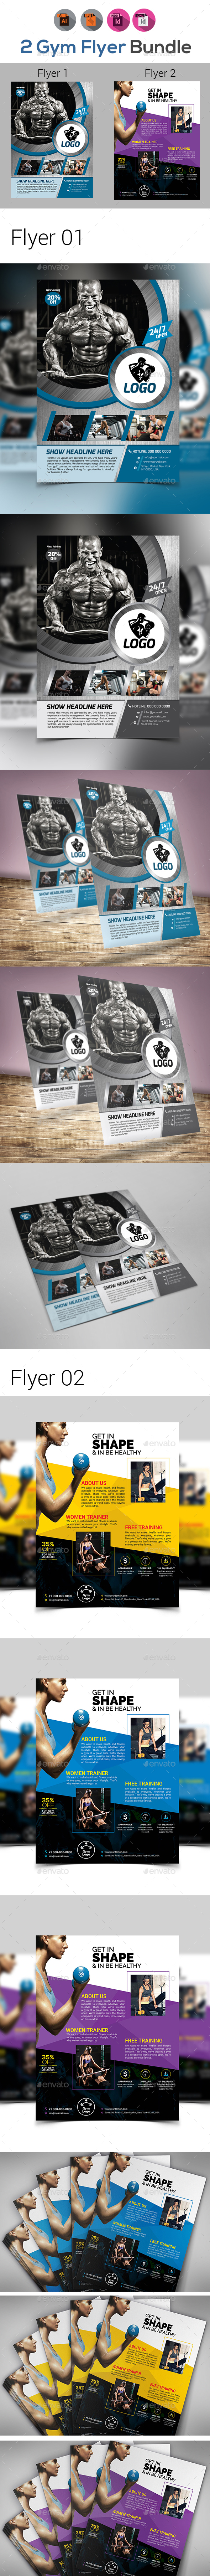 Fitness & Gym Flyers Bundle